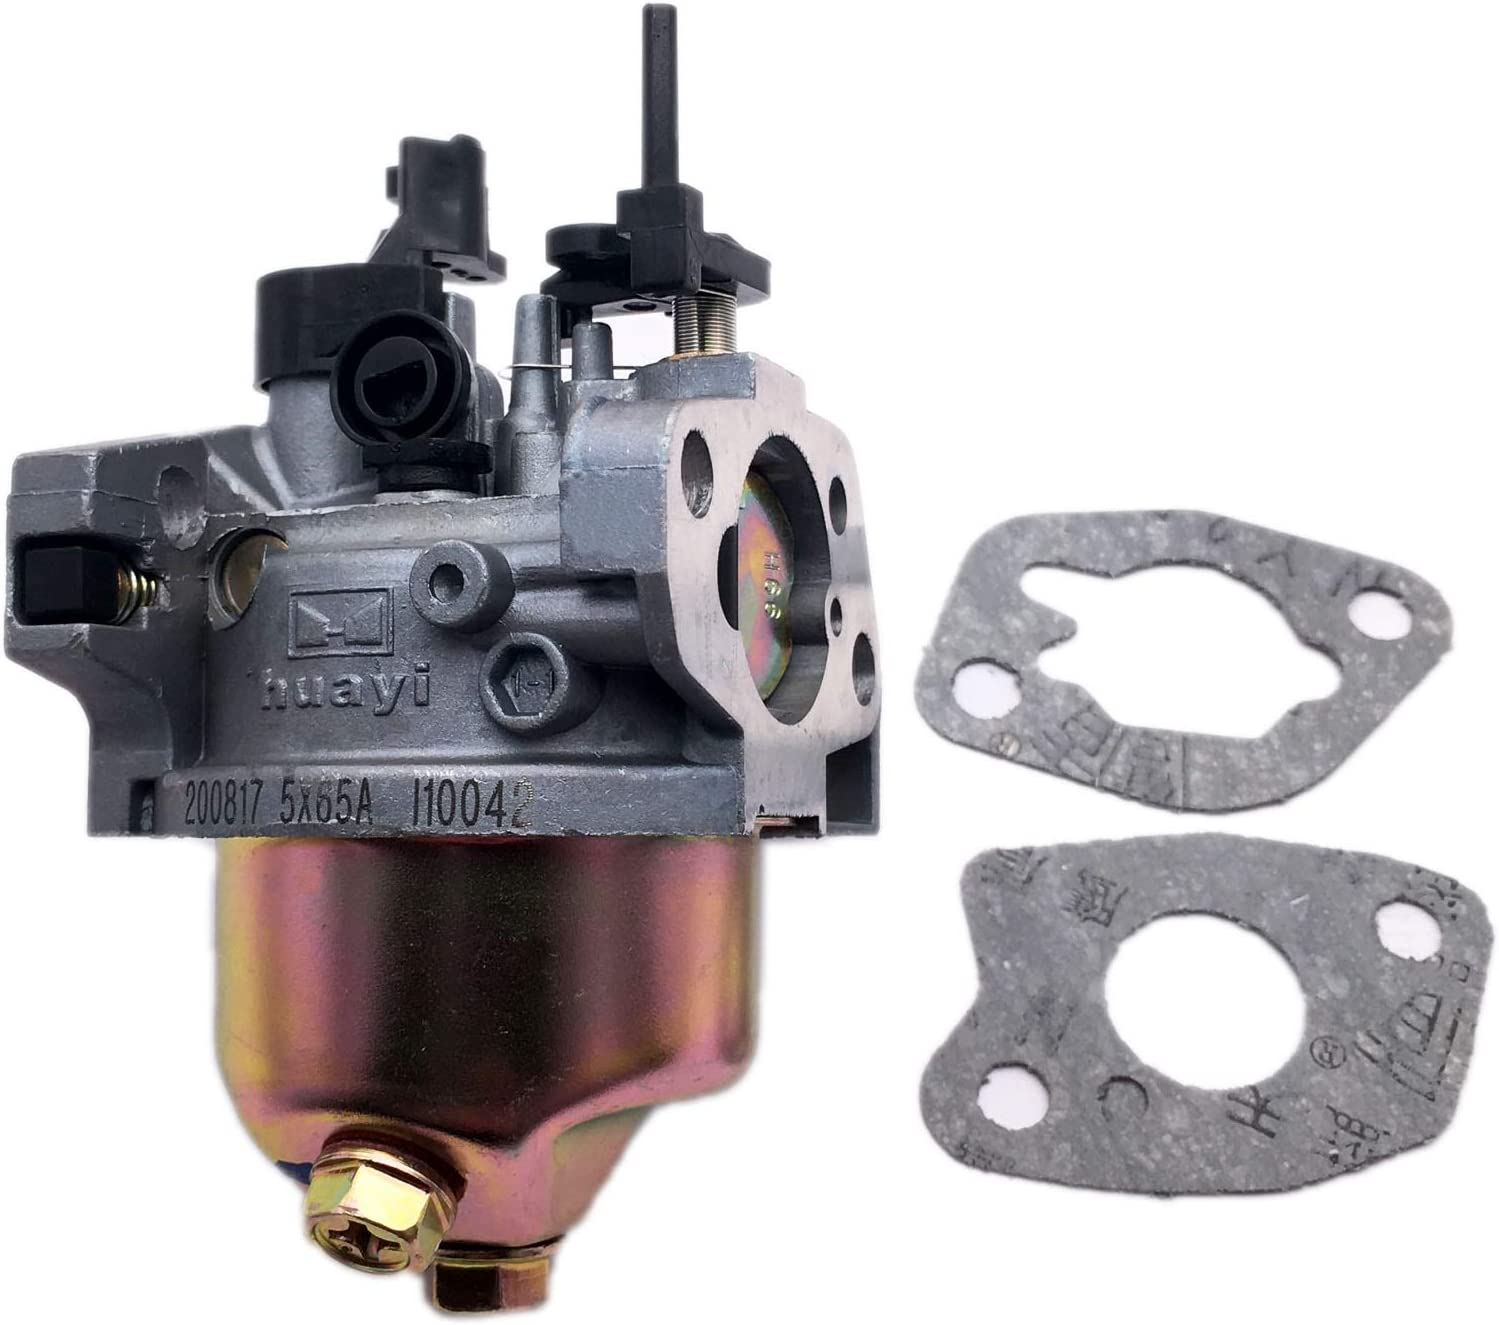 ALLMOST HUAYI 35% OFF Carburetor Carb w Cadet Compatible with Gasket Max 58% OFF Cub